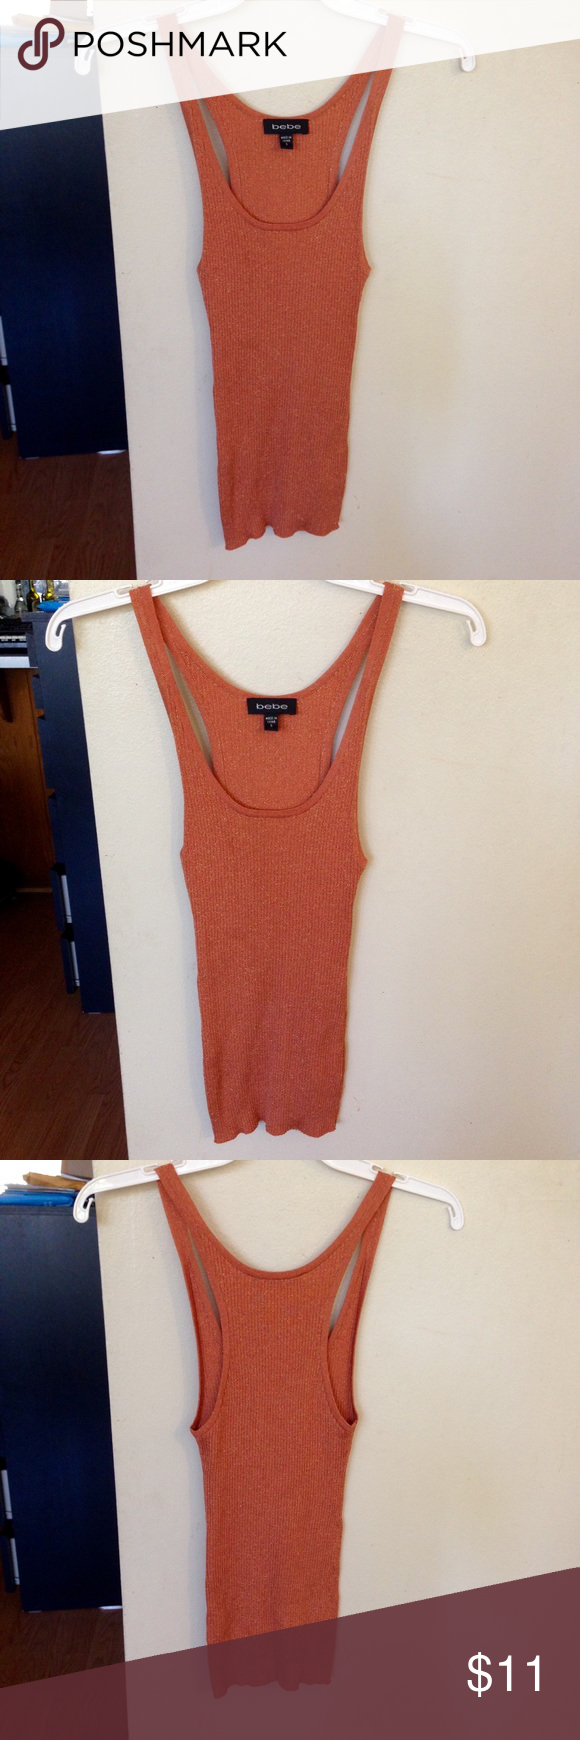 Bebe burnt orange glitter metallic tank top A cute Bebe burnt orange tank top in a size small. The material has shimmery metallic strands and is stretchy. Great for layering and for casual wear. bebe Tops Tank Tops